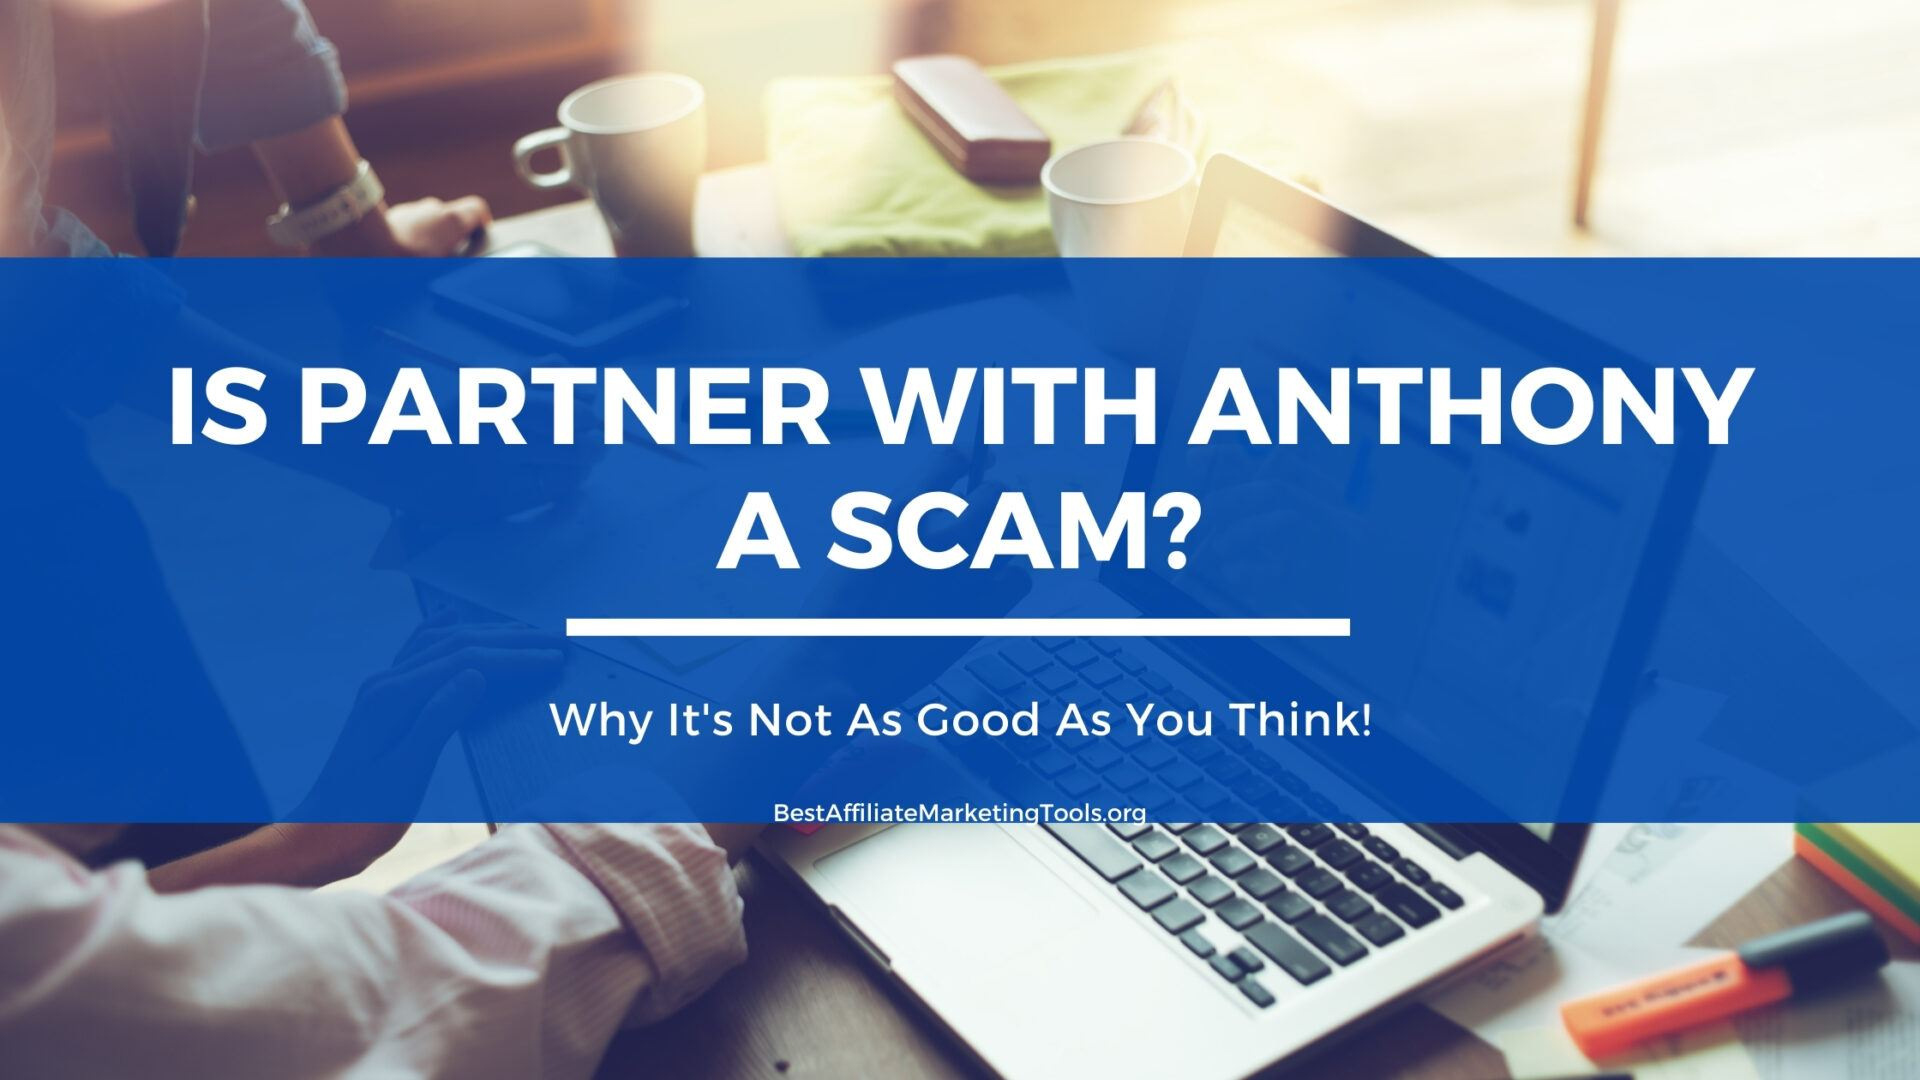 Is Partner with Anthony a Scam